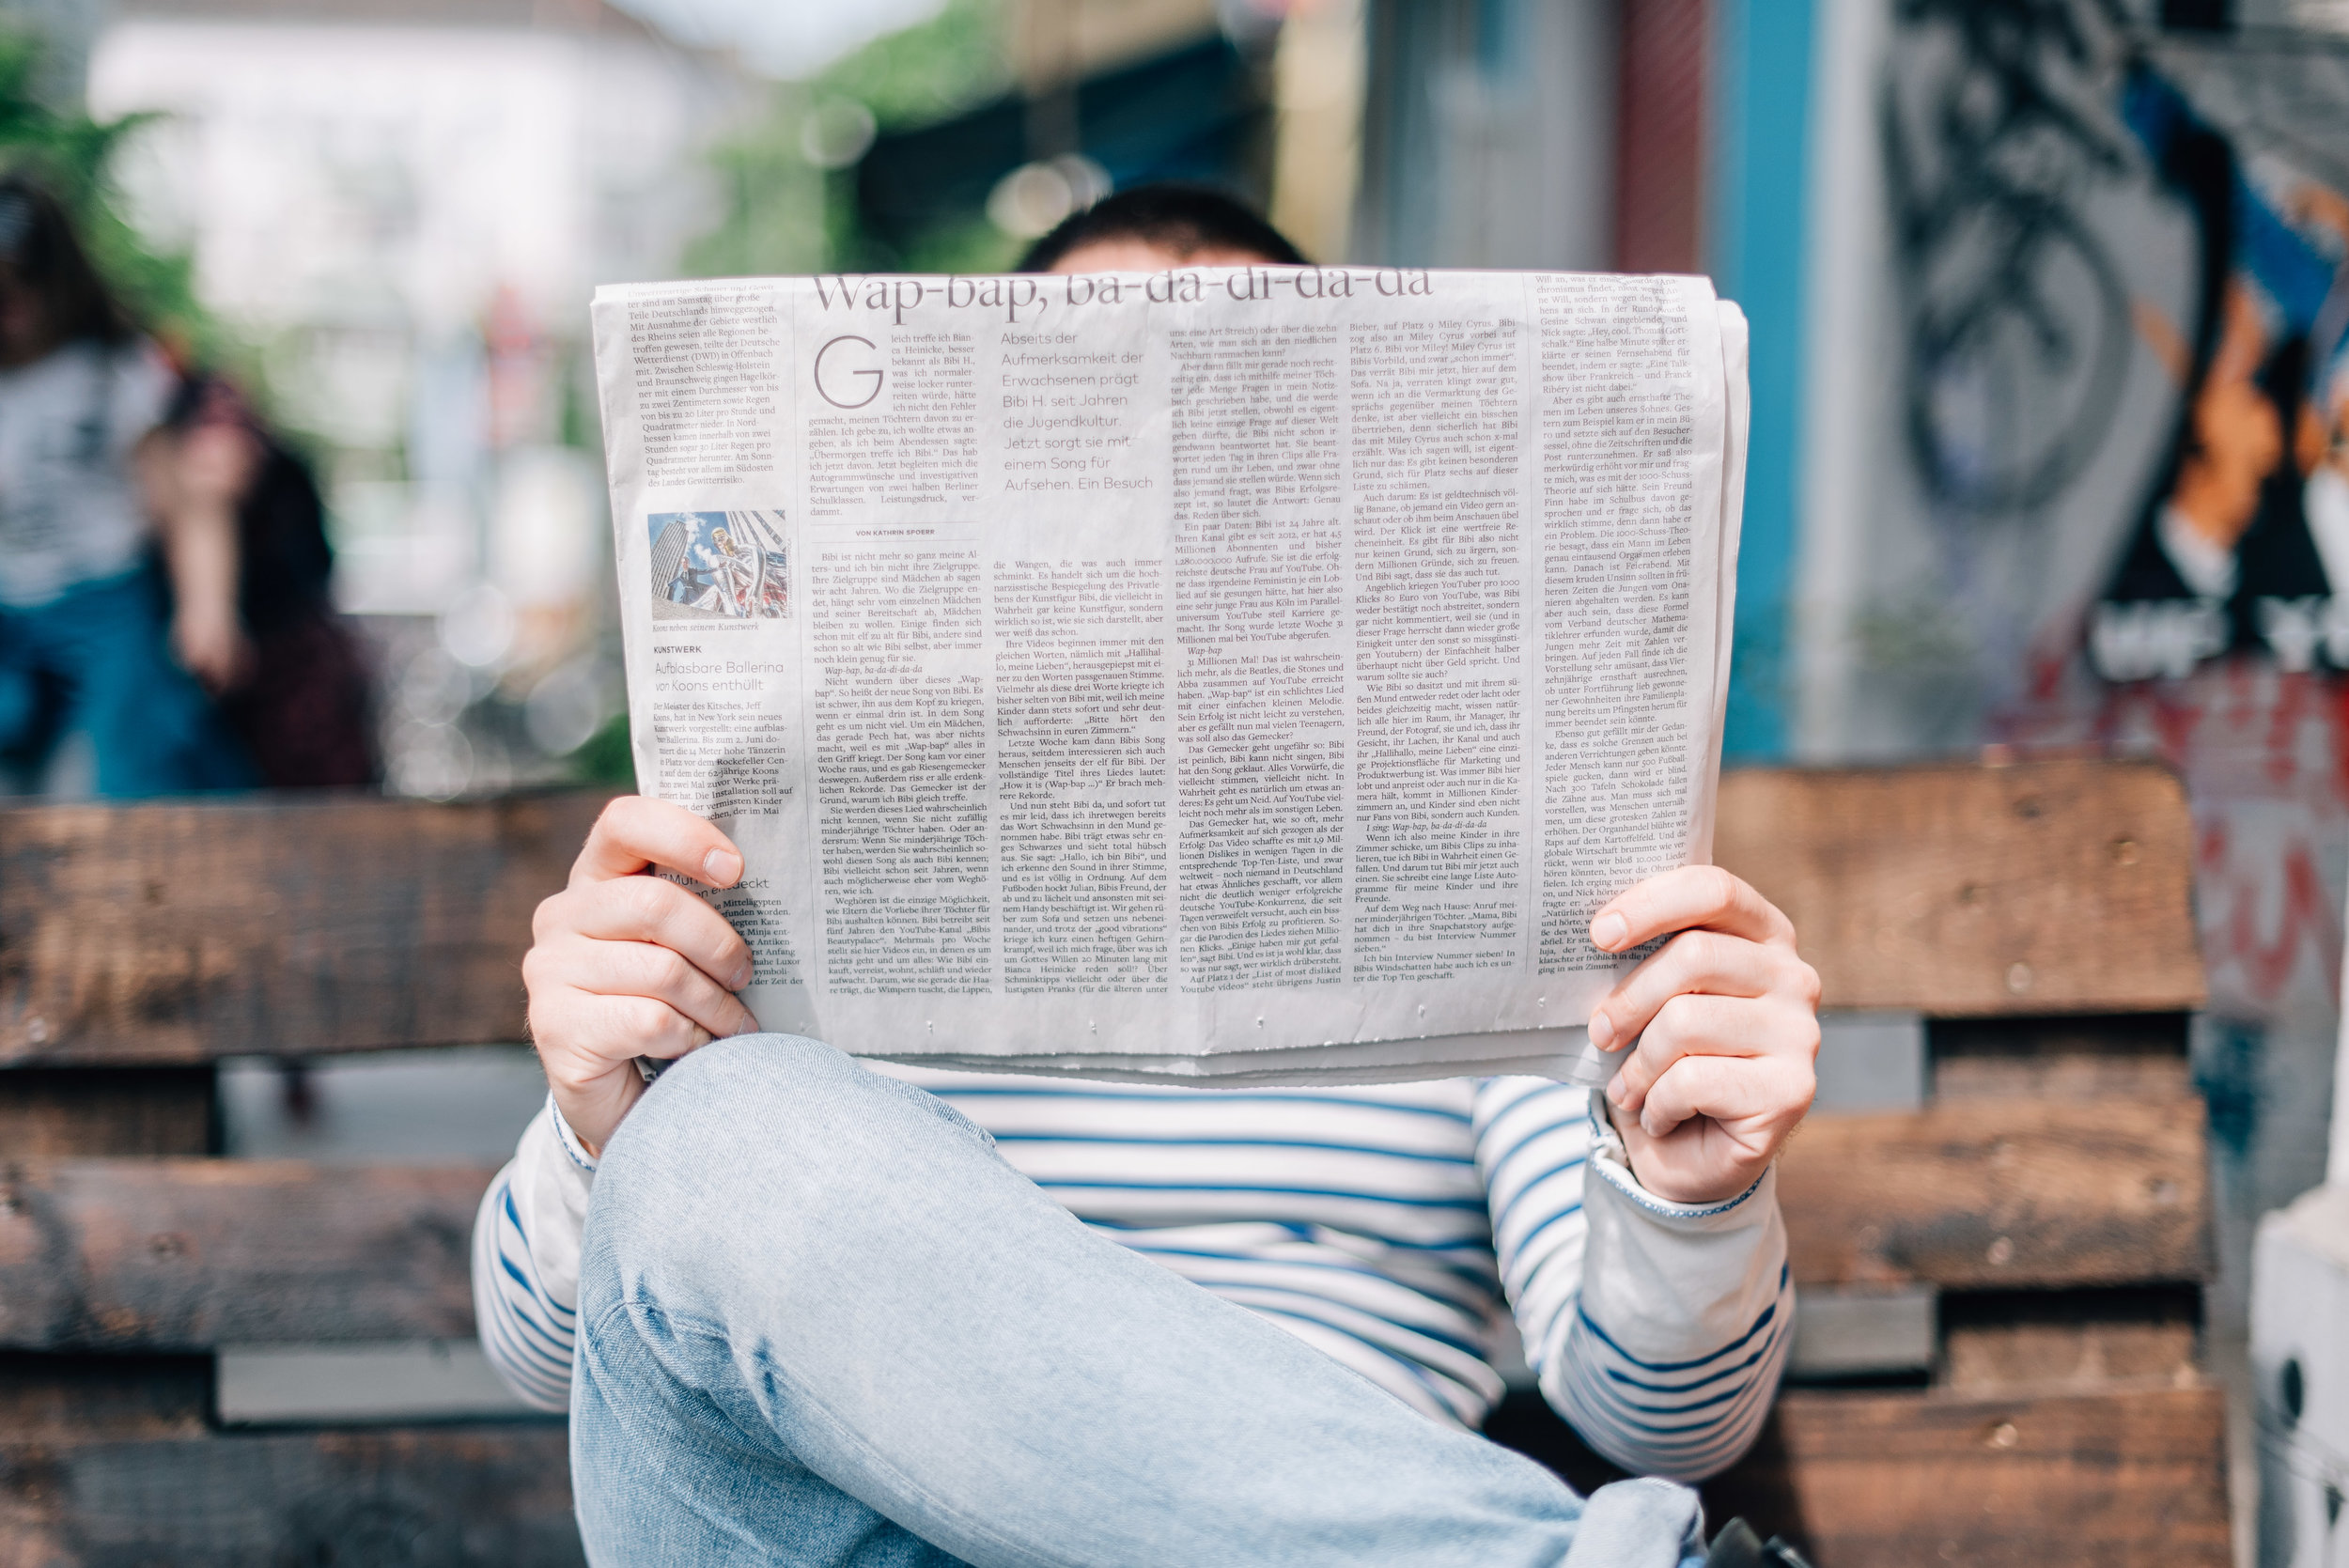 Public Relations - Tell your story the way it should be told. By working with local, regional, and national press in your field, you can amplify your reach while steering the conversation in the right direction.